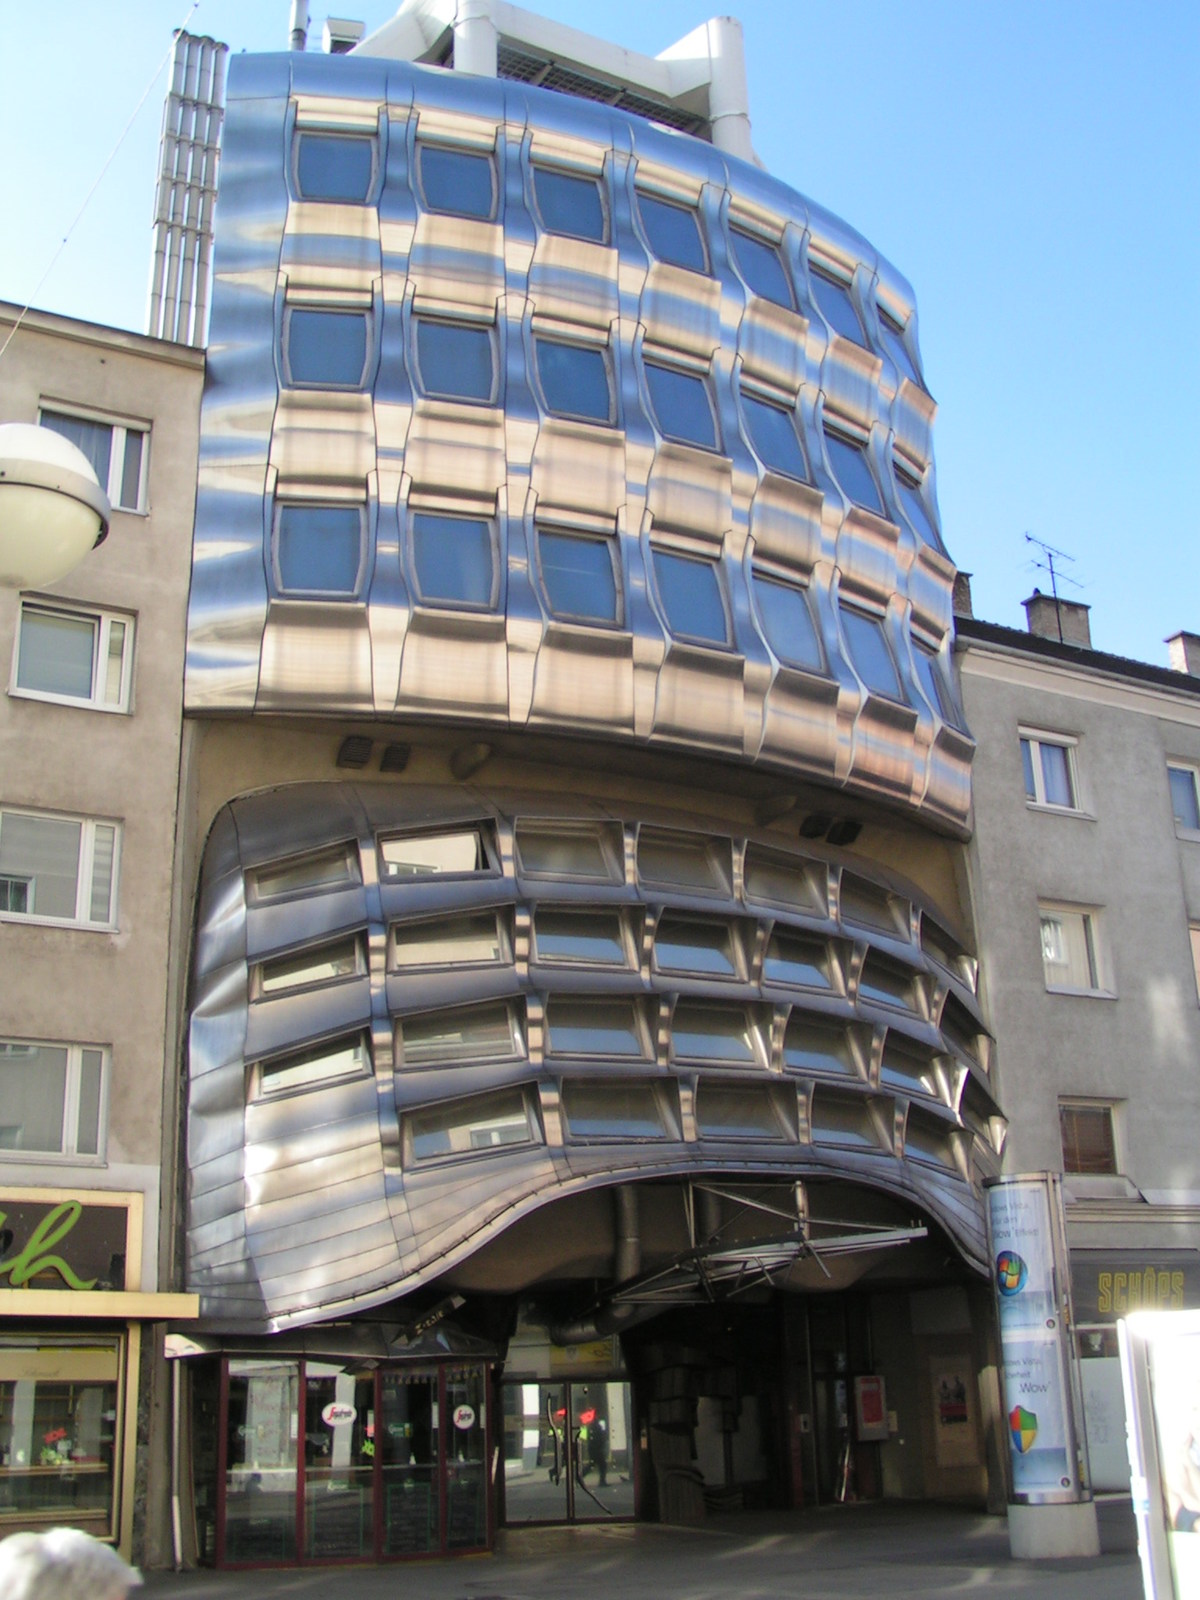 Former Zentralsparkassenfiliale Favoritenstrasse in Vienna, District Favoriten. The Building designed by Günther Domenig via WikiMedia